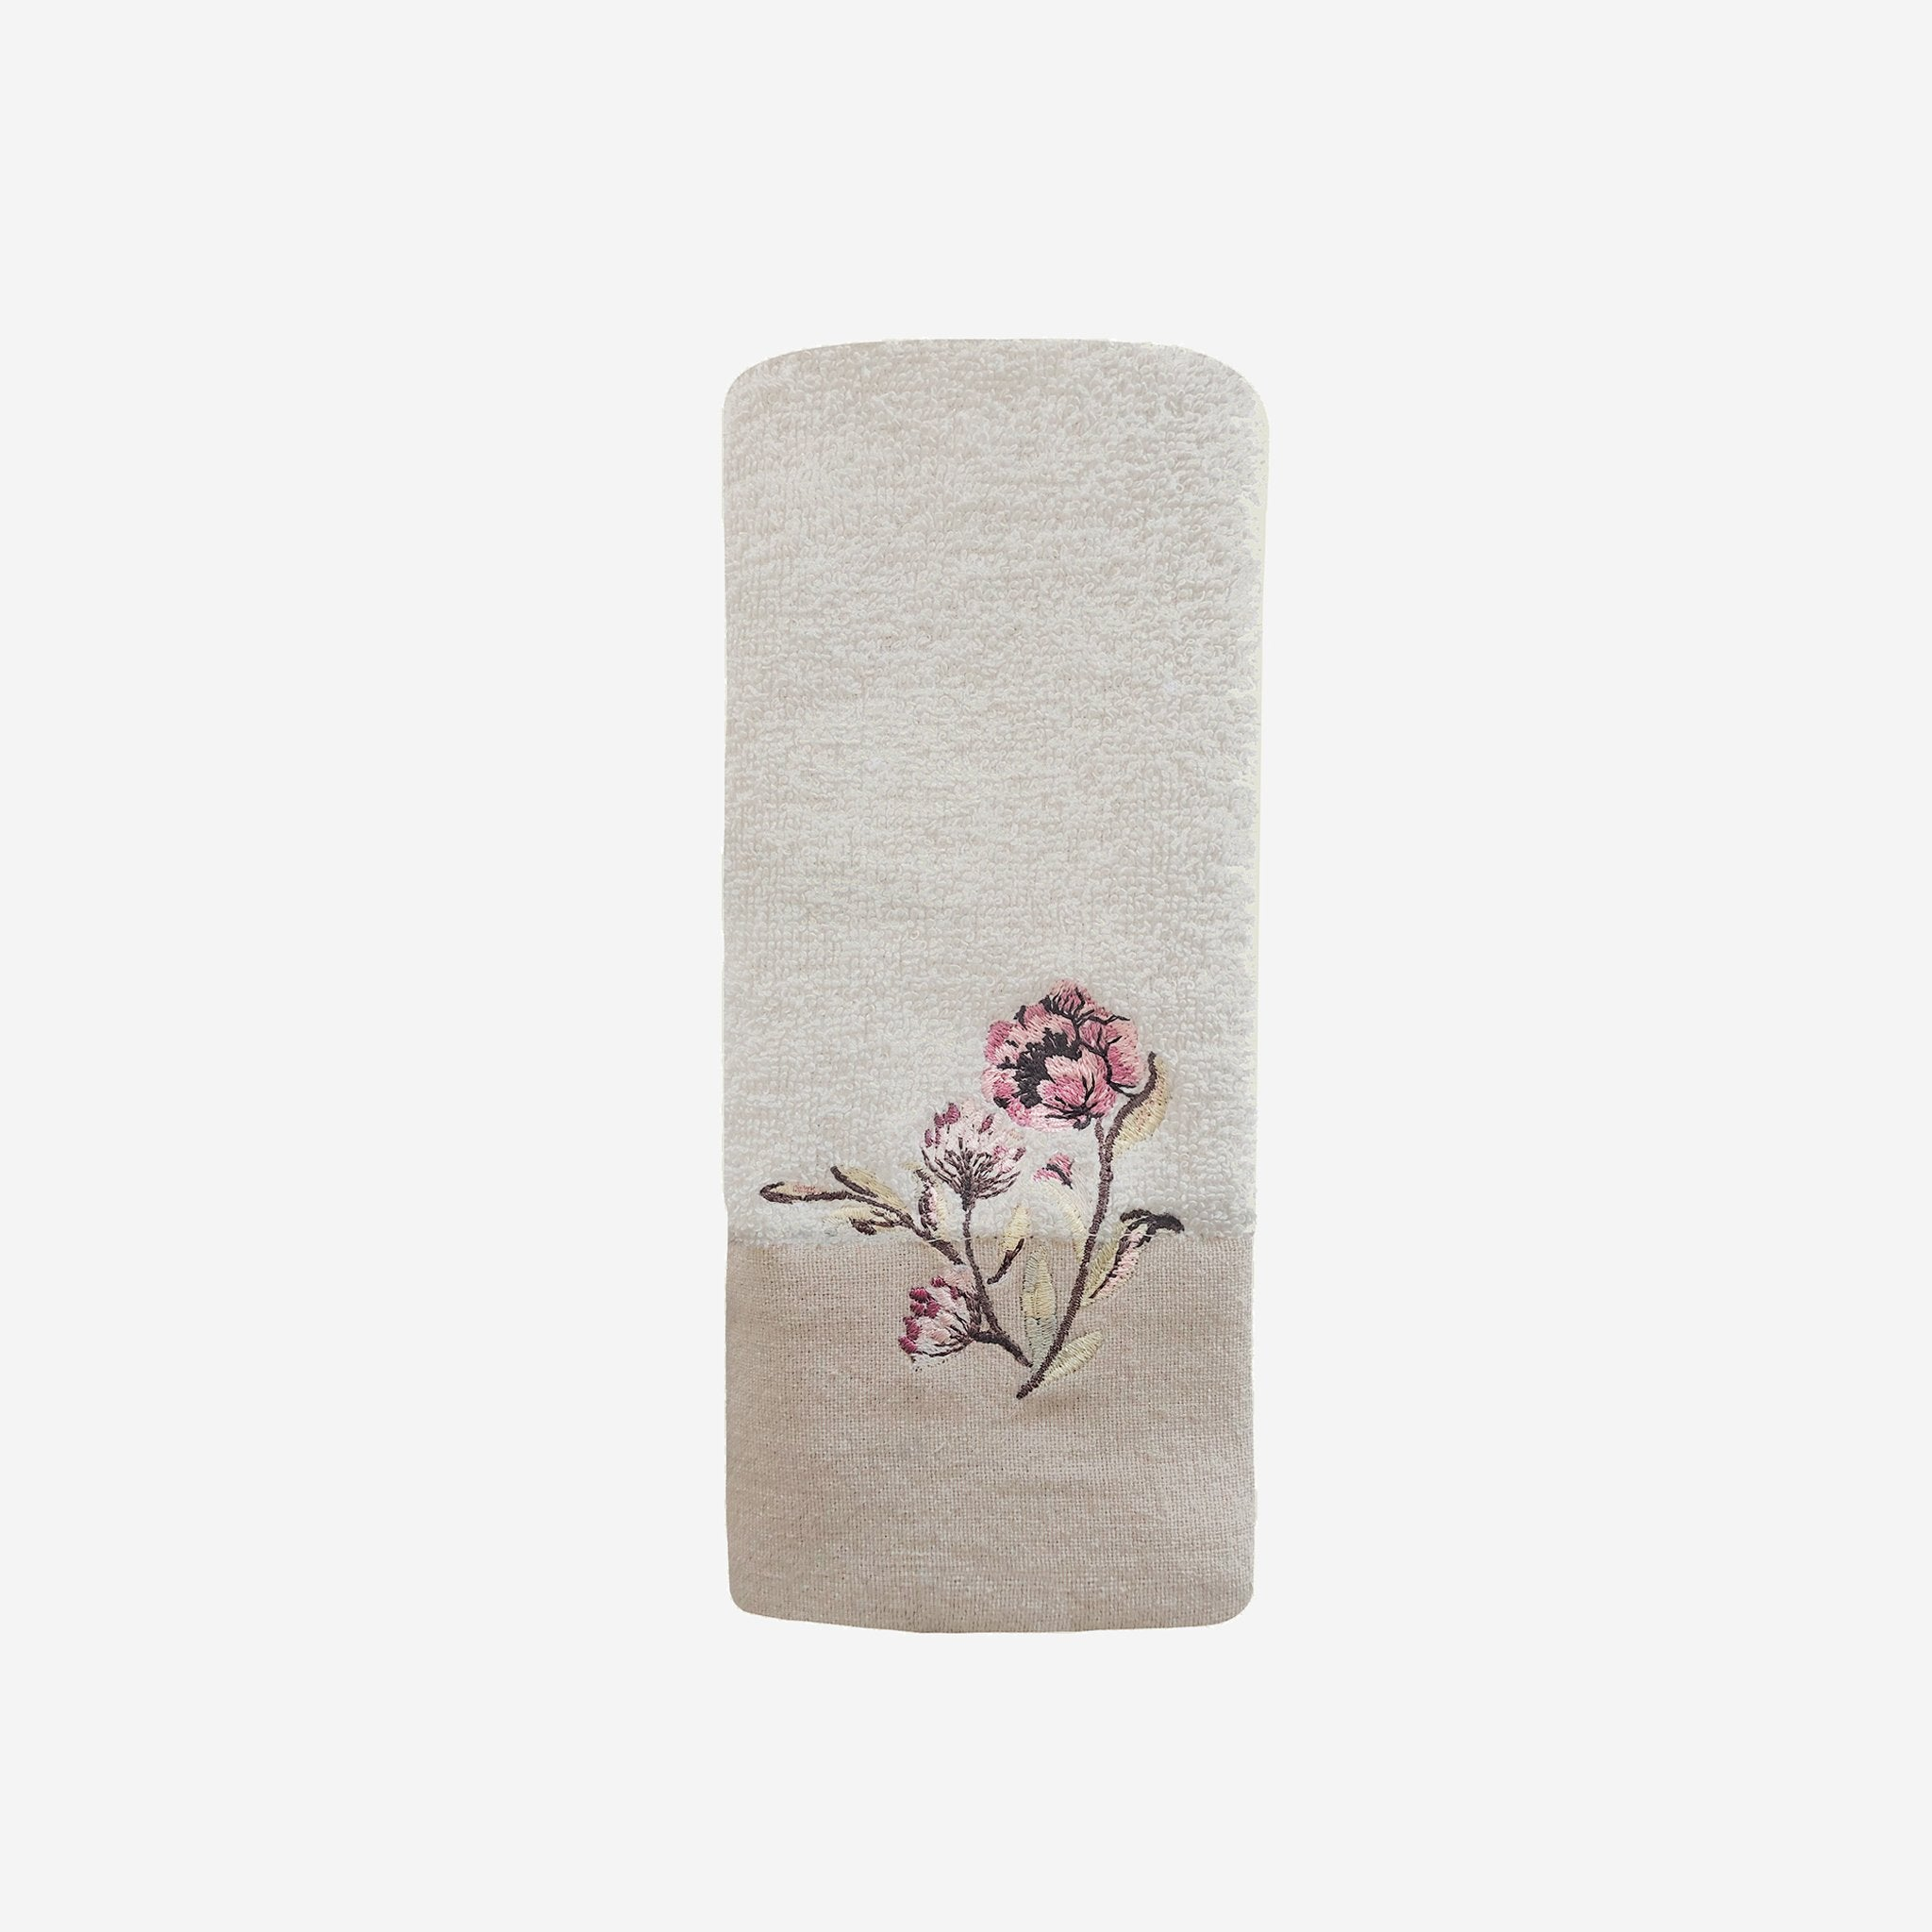 "Alene Fingertip 11"" x 18"" Towel With Floral Embroidery"